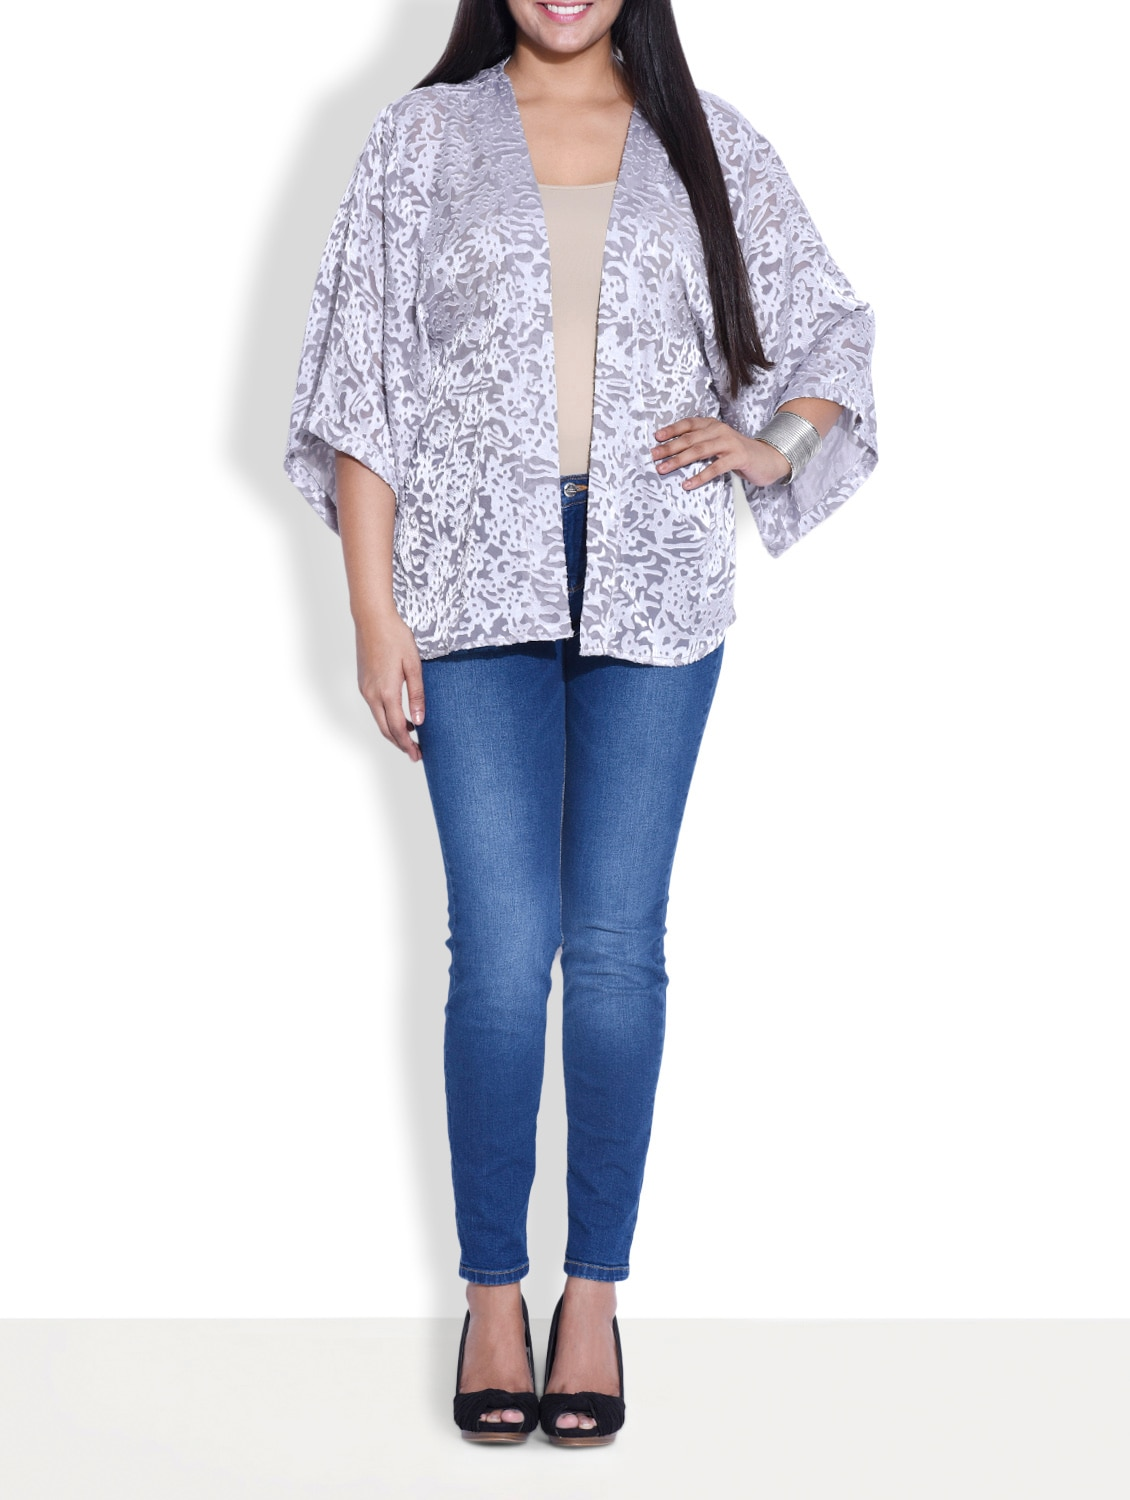 Silver Rayon Open Front Shrug - By